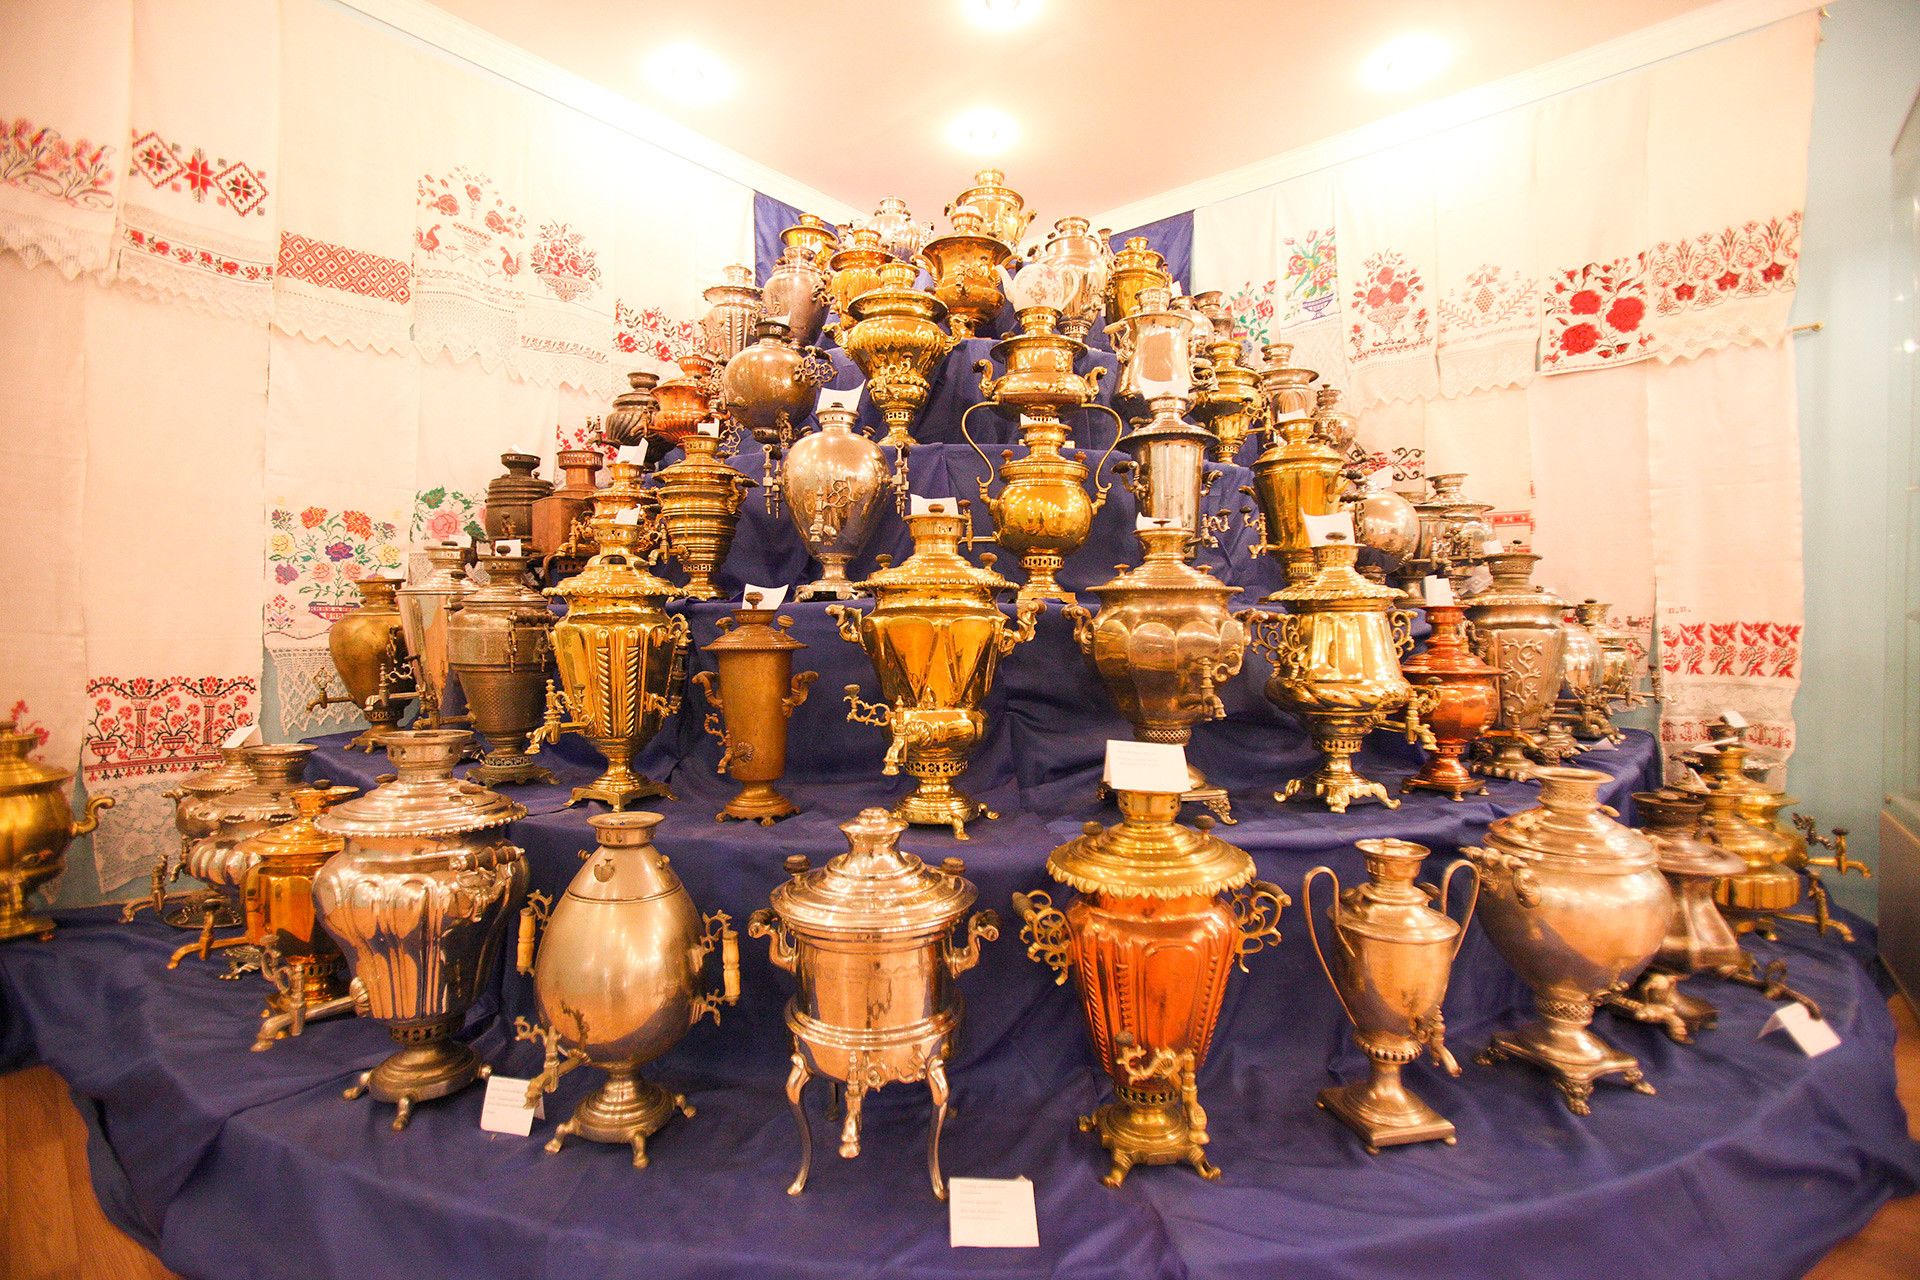 Museum Russian samovar in Kasimov